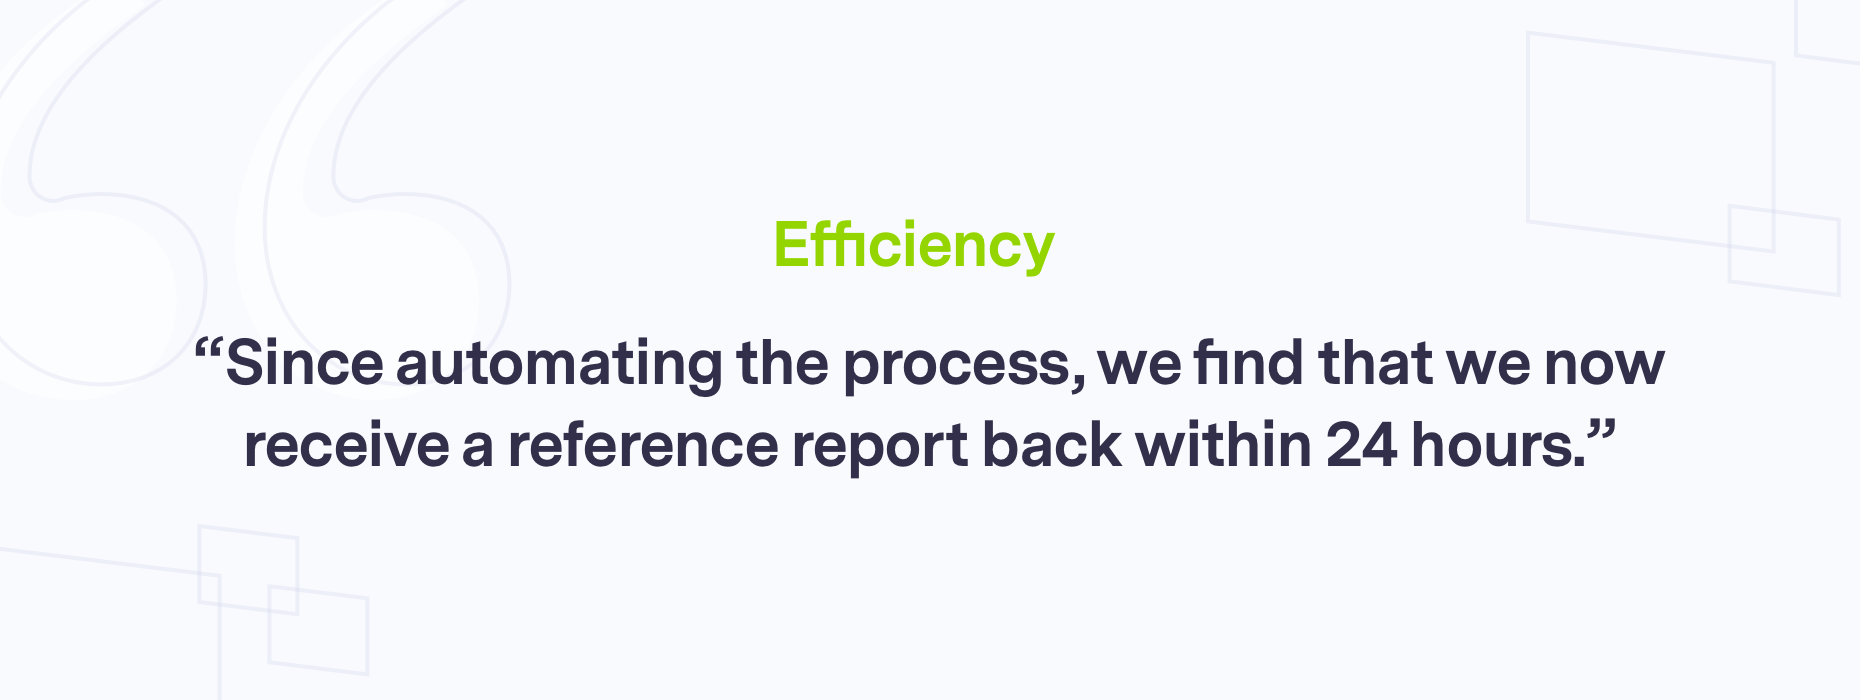 Branded quote on efficiency